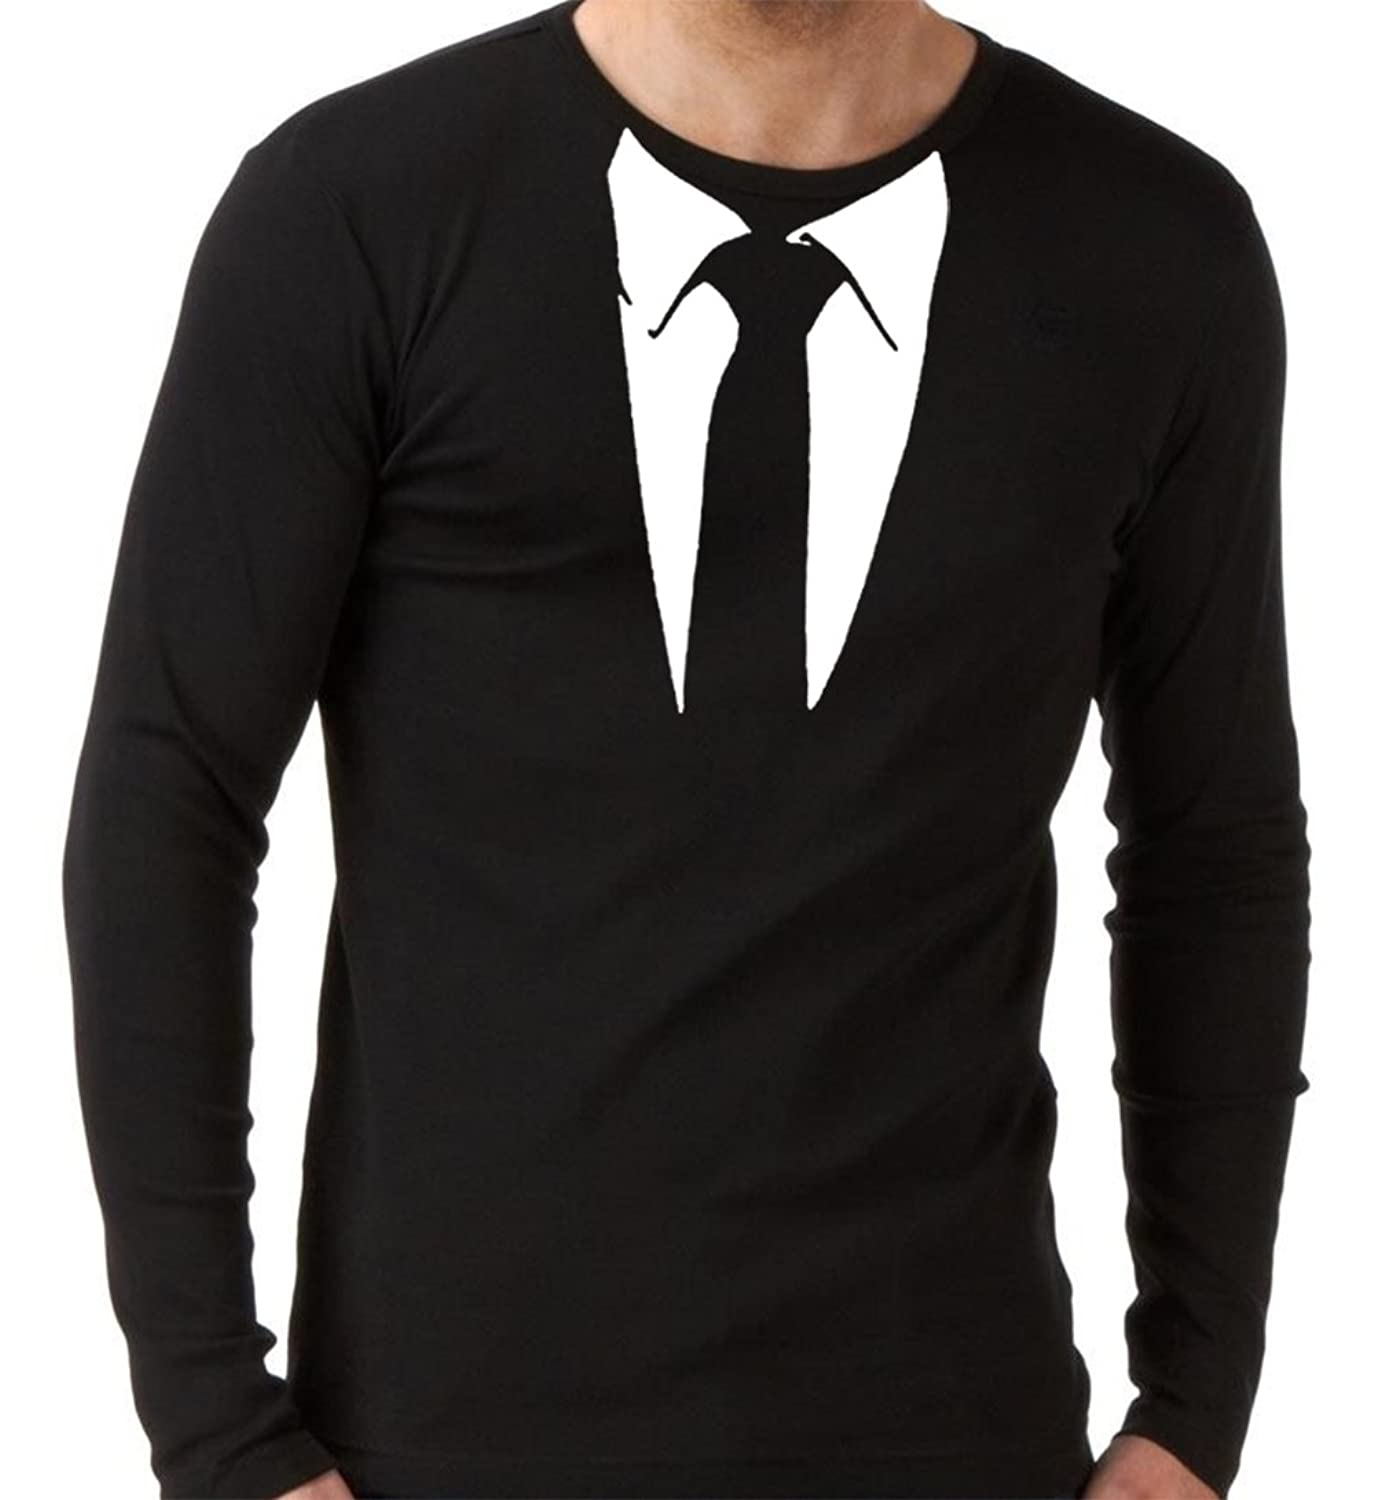 Black t shirt with suit - Suit And Black Tie Long Sleeve T Shirt Funny Stag Fancy Dress Party Amazon Co Uk Clothing